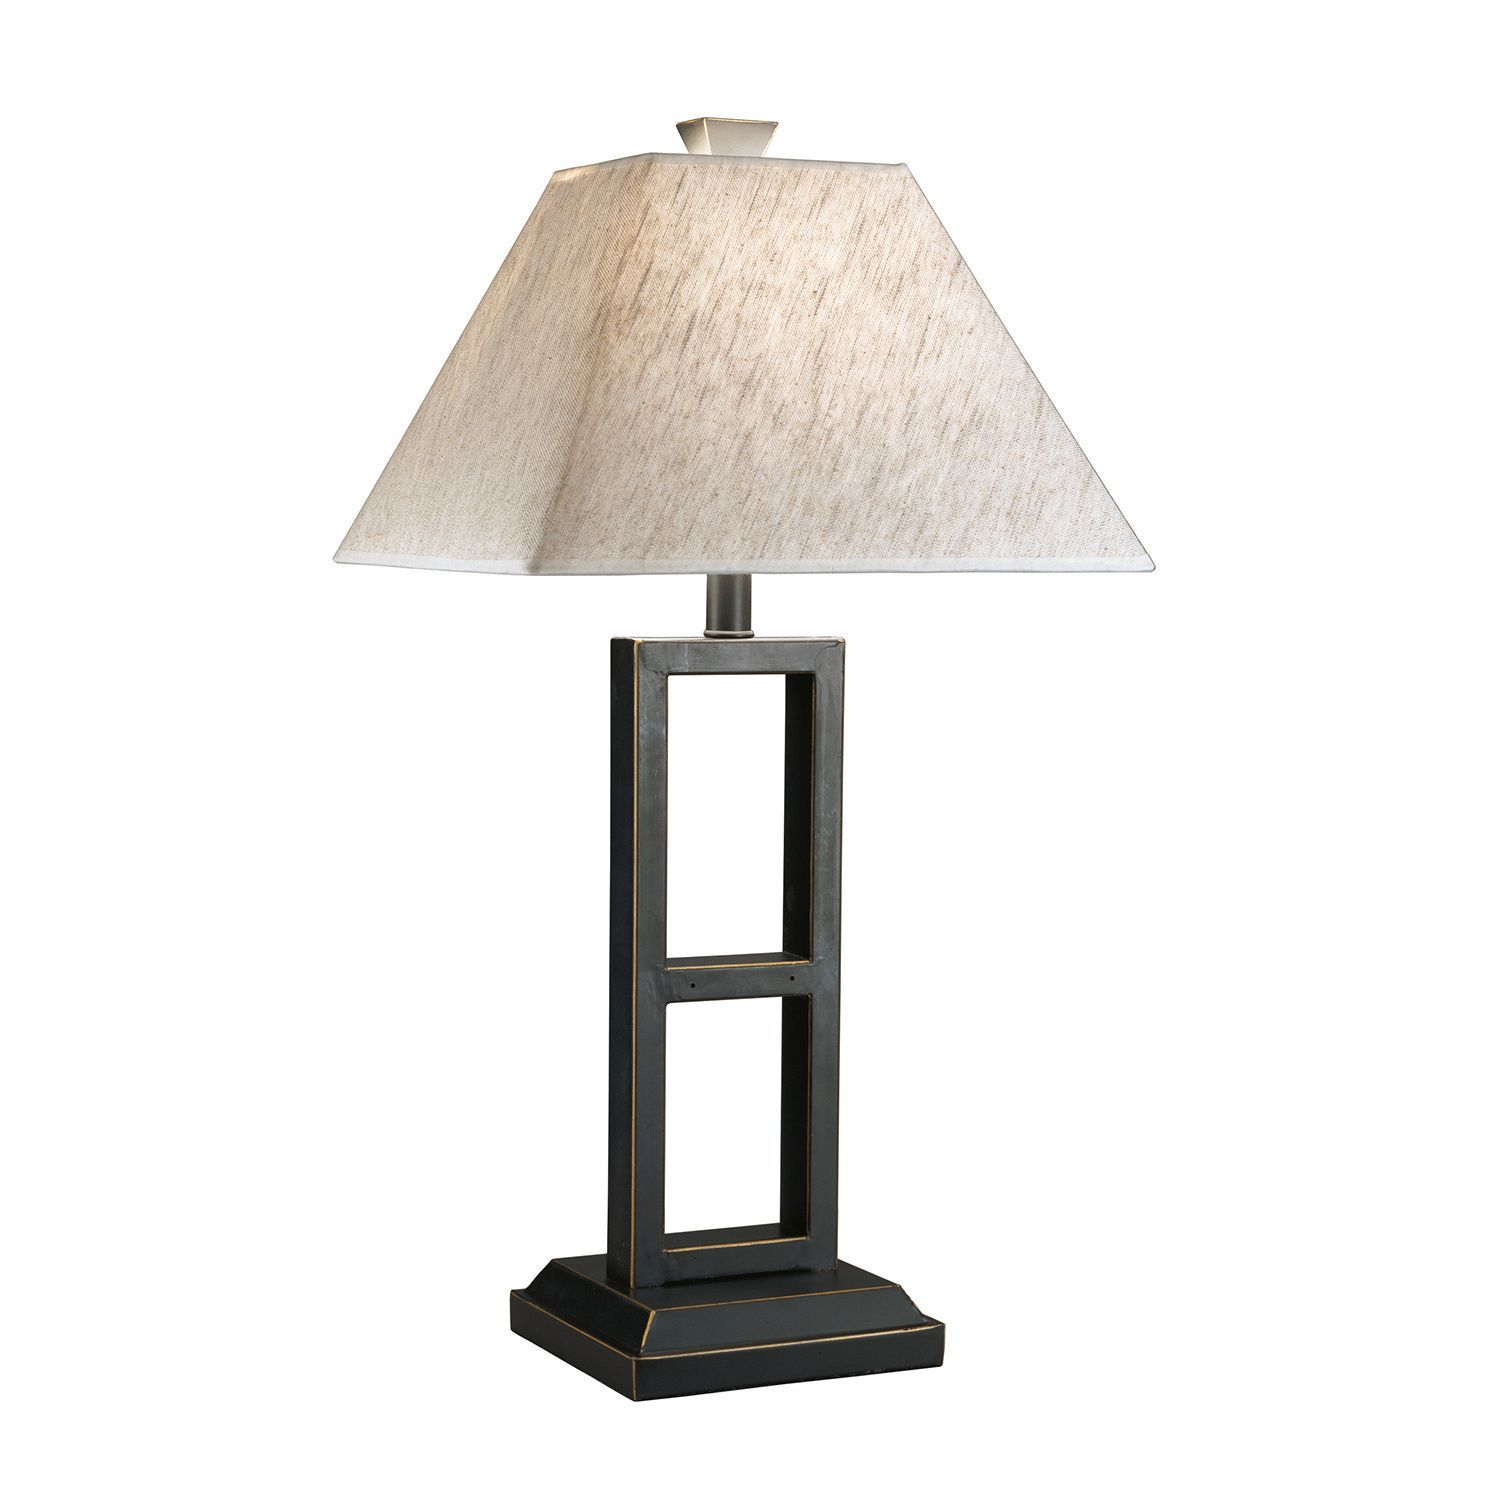 Great Signature Design By Ashley Deidra Black Table Lamps (Set Of 2) | Overstock.